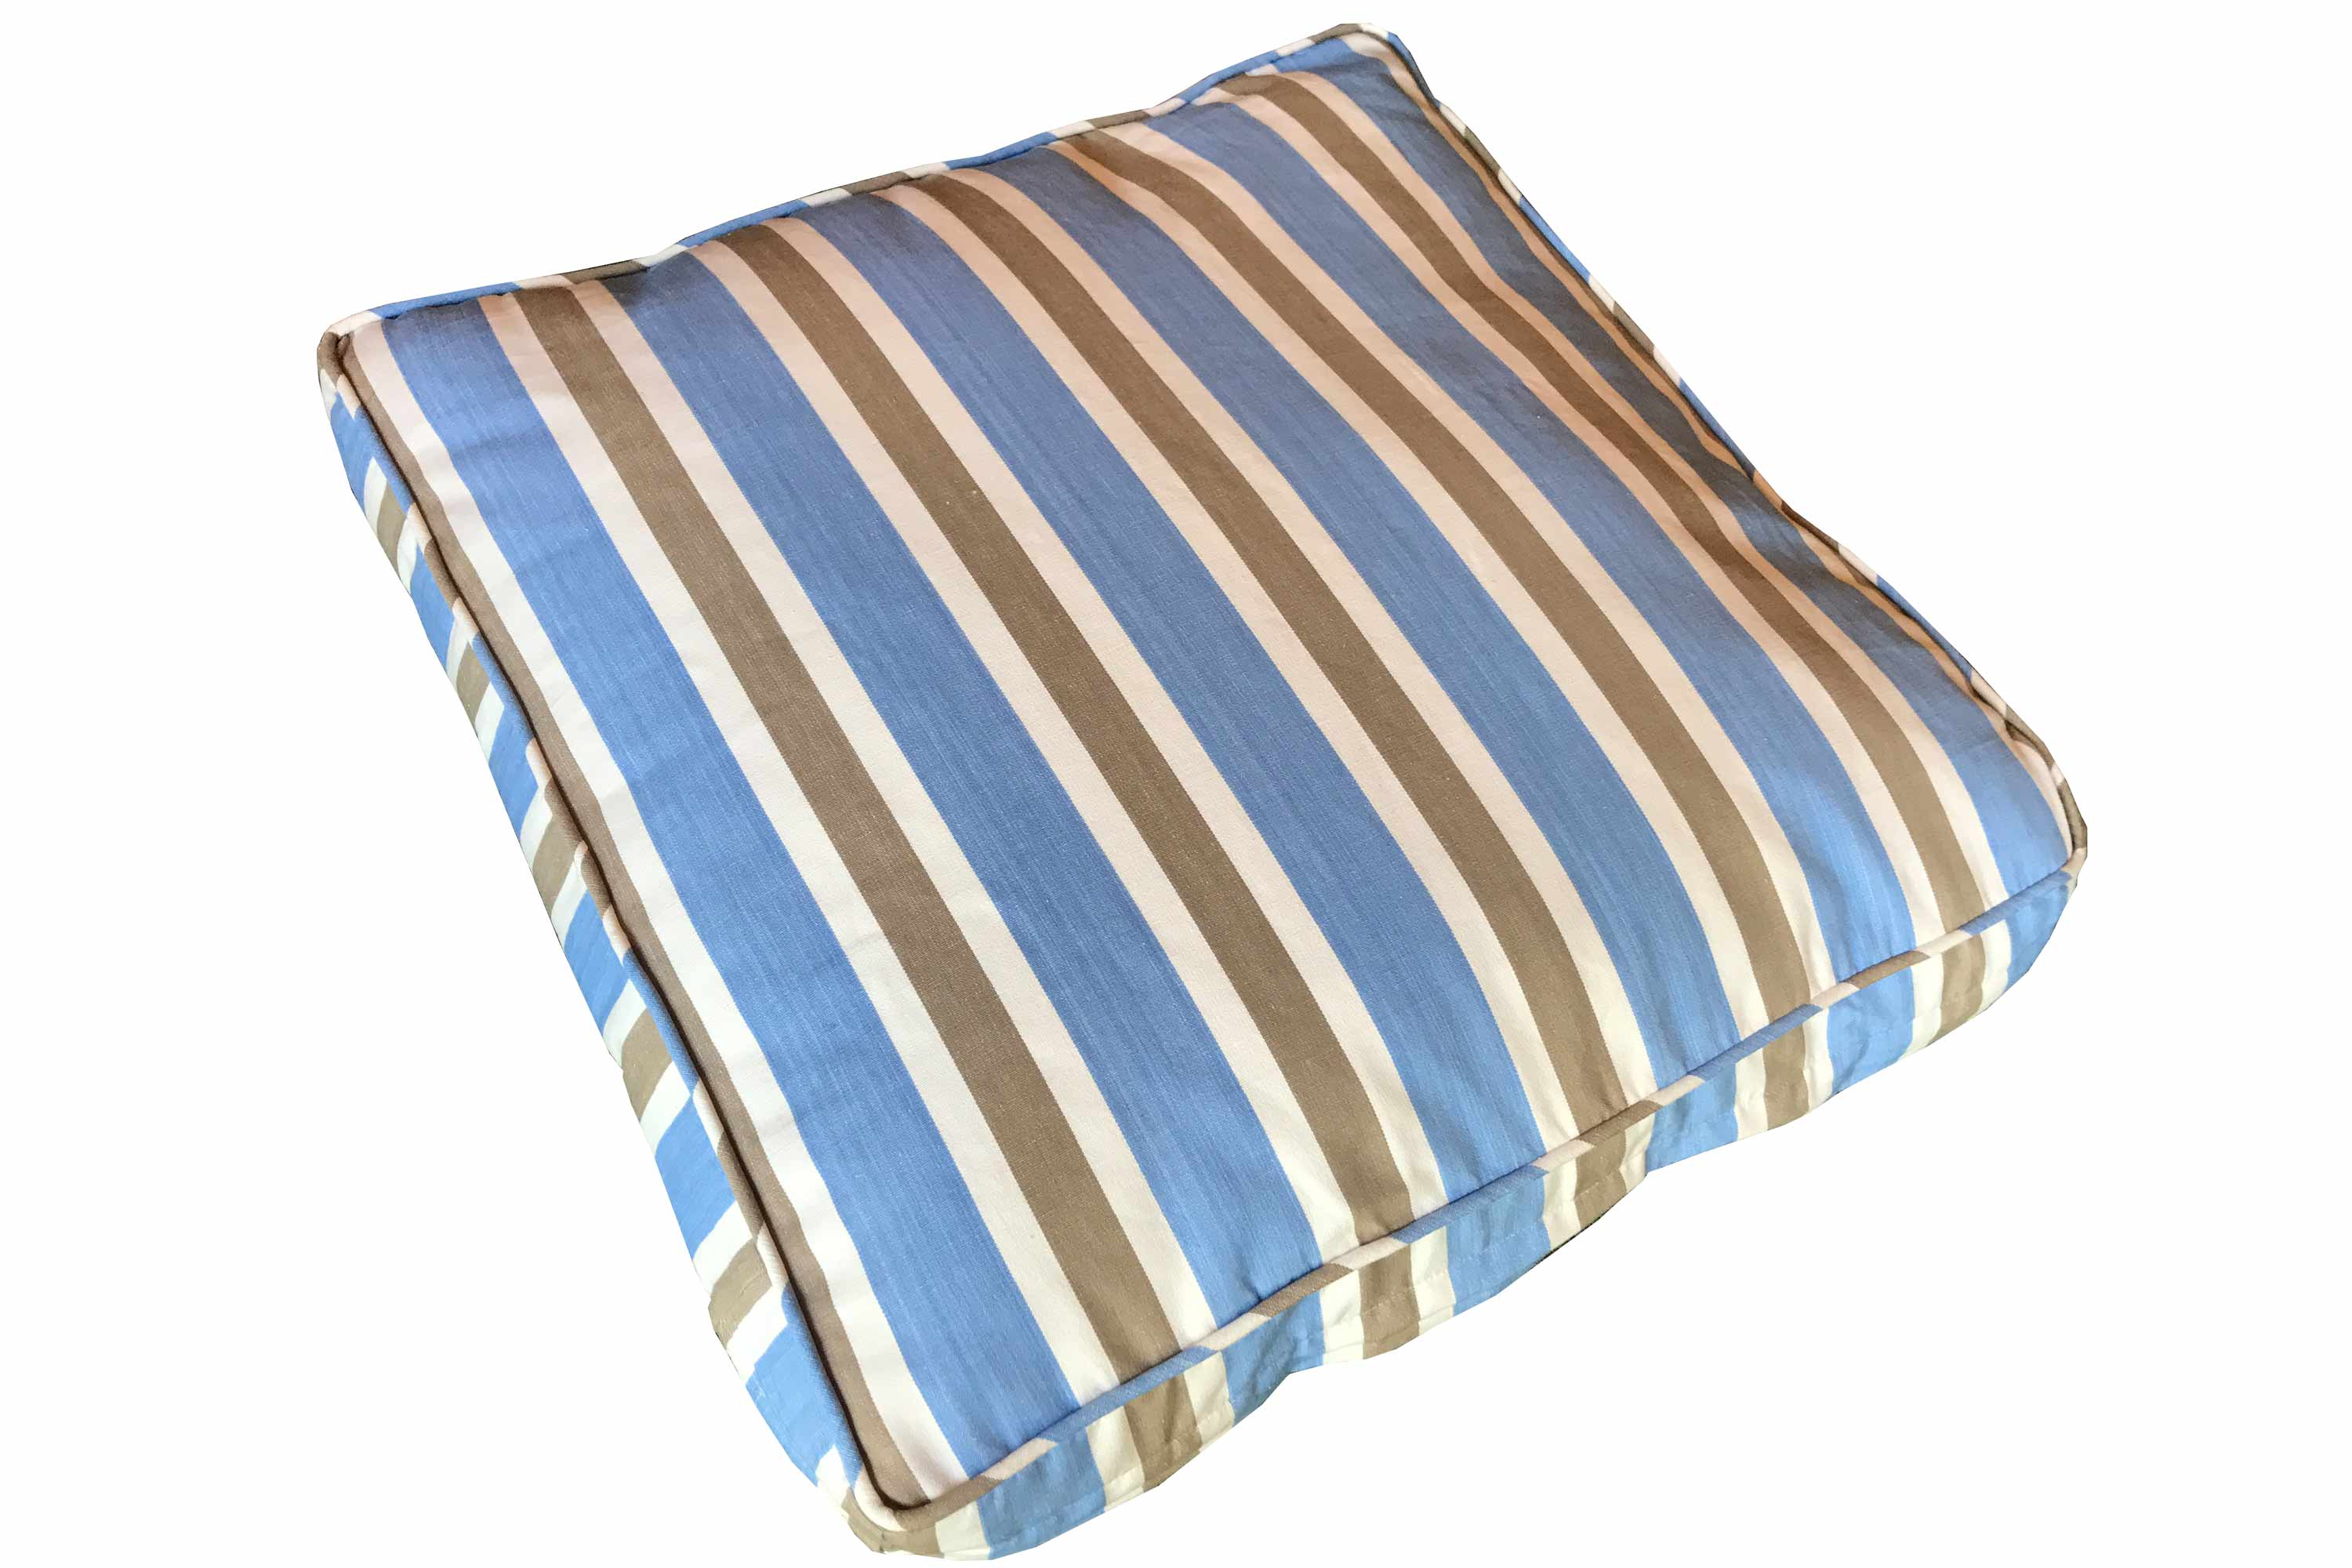 Sky Blue, Beige, White Stripe Large Floor Cushions